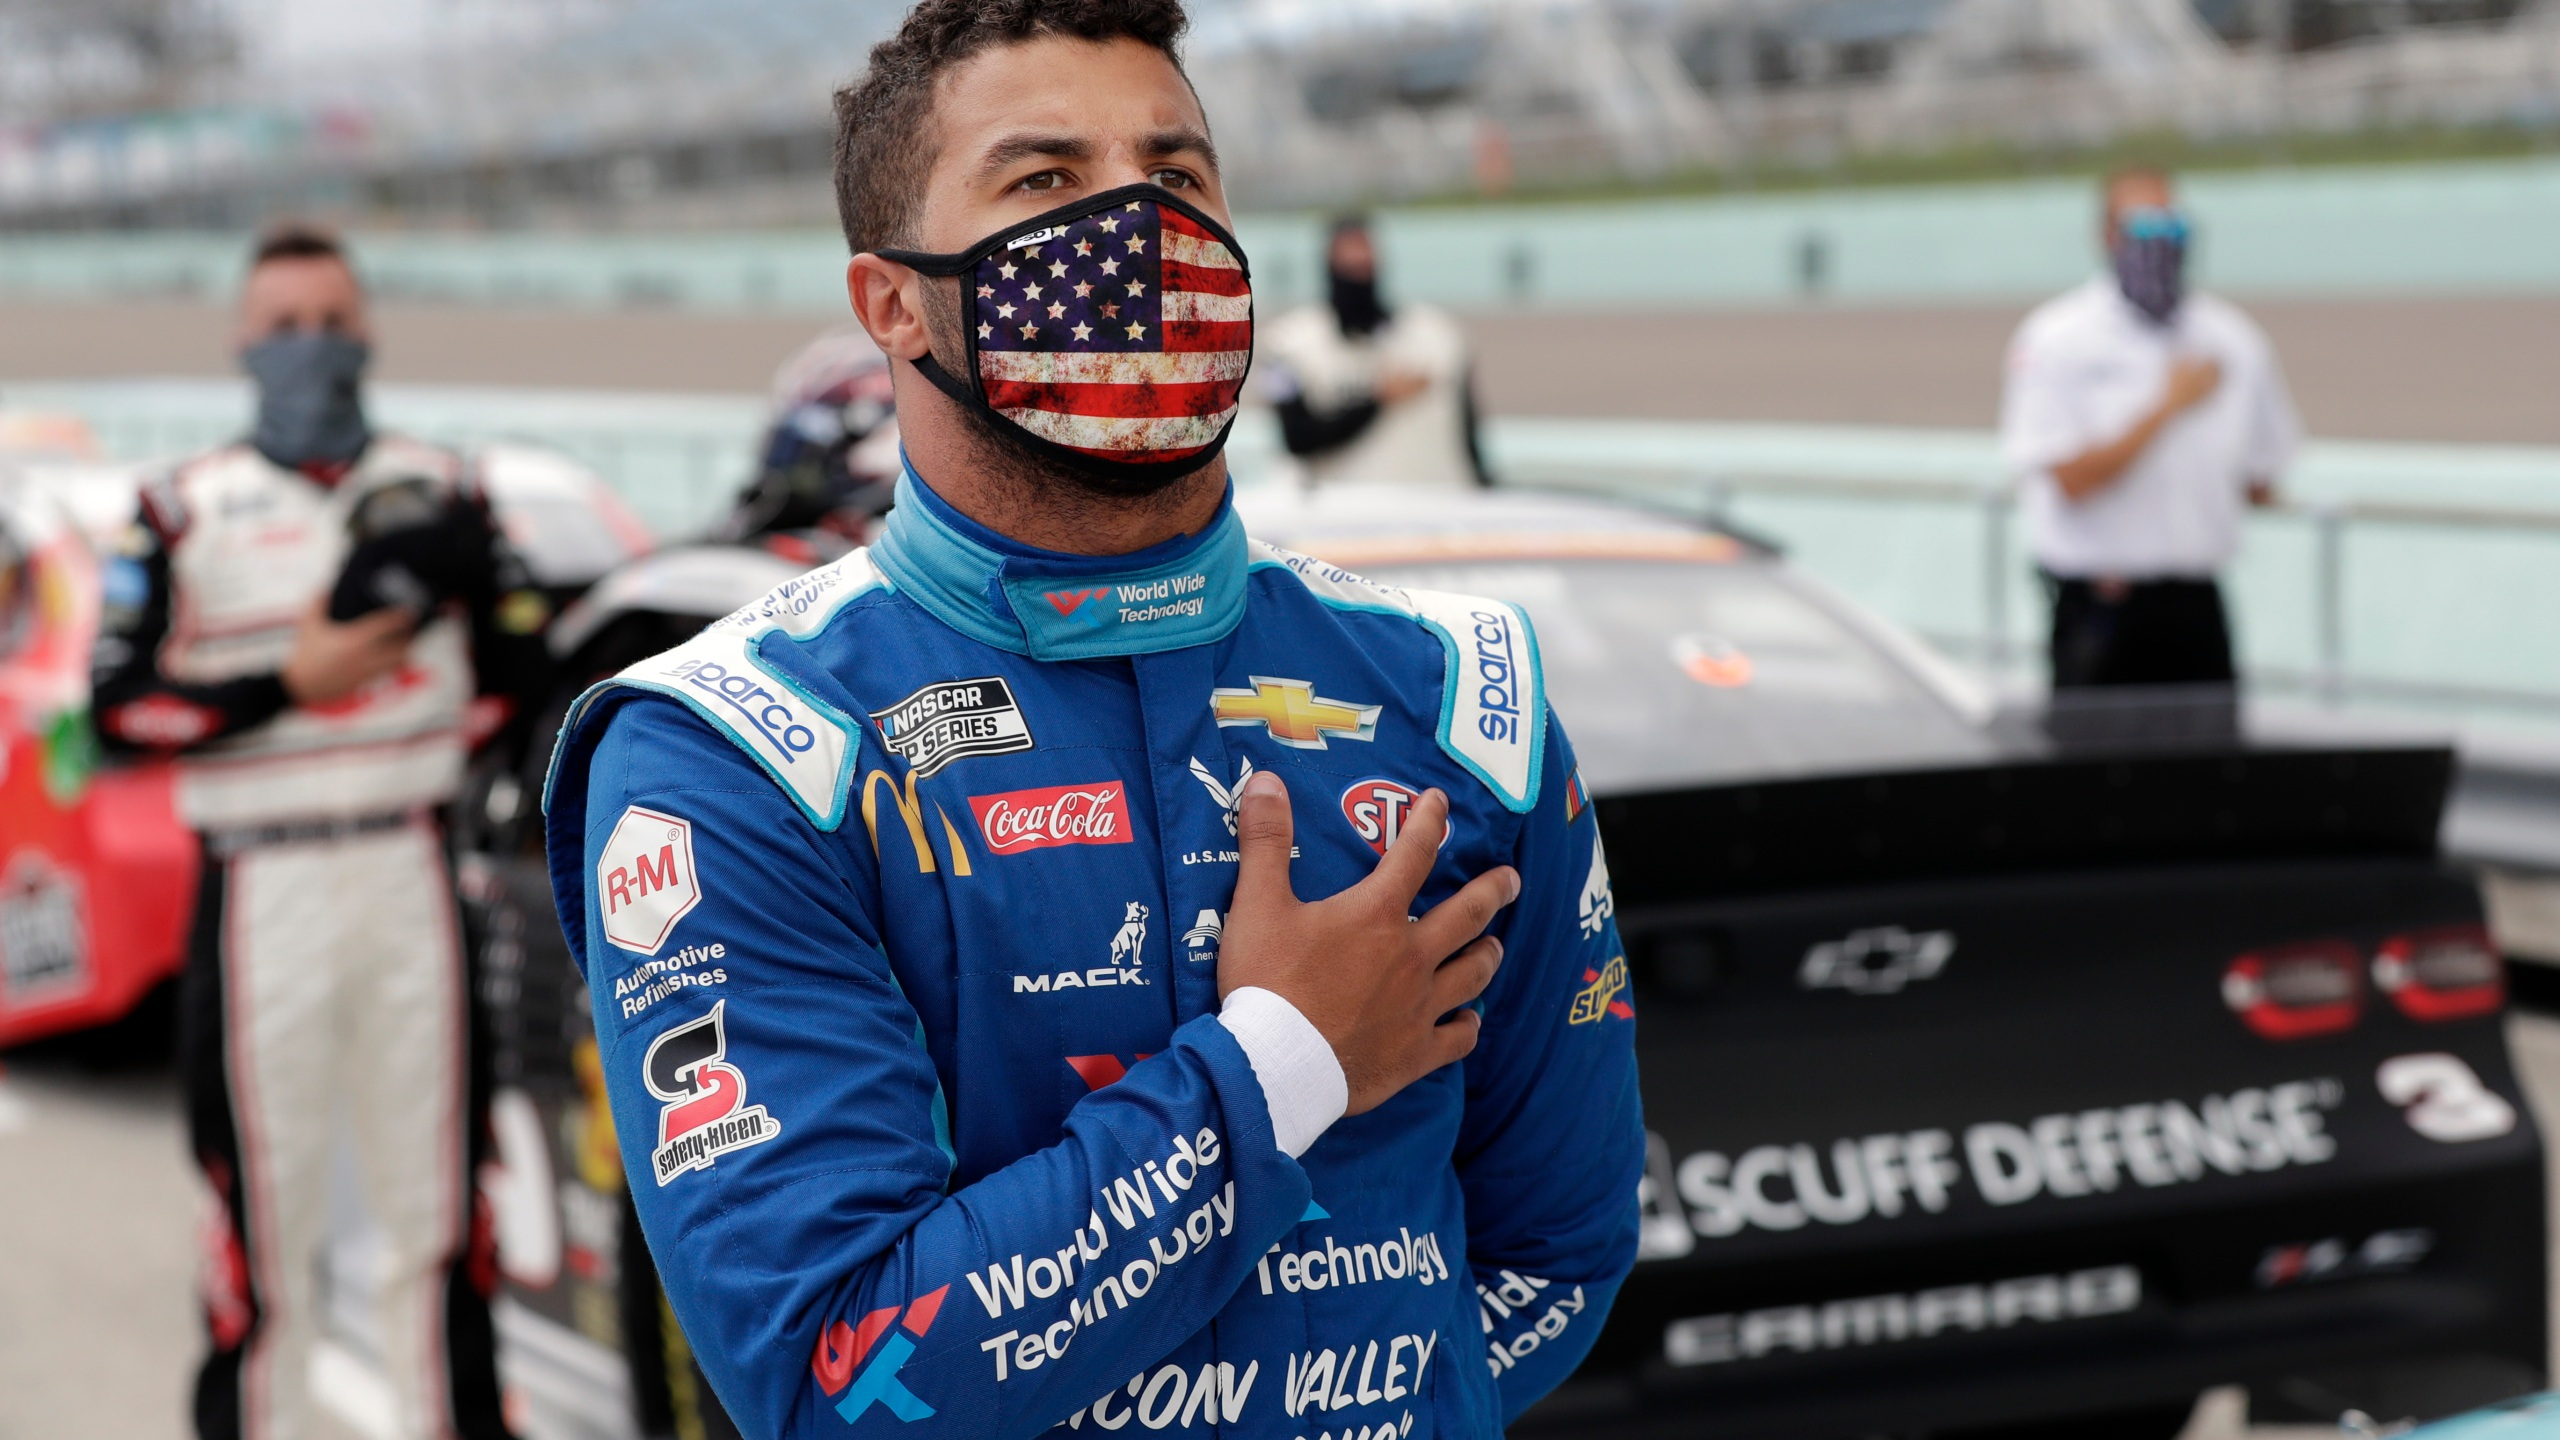 Denny Hamlin And Michael Jordan Starting New Nascar Cup Series Team With Bubba Wallace As Driver Fox 4 Kansas City Wdaf Tv News Weather Sports